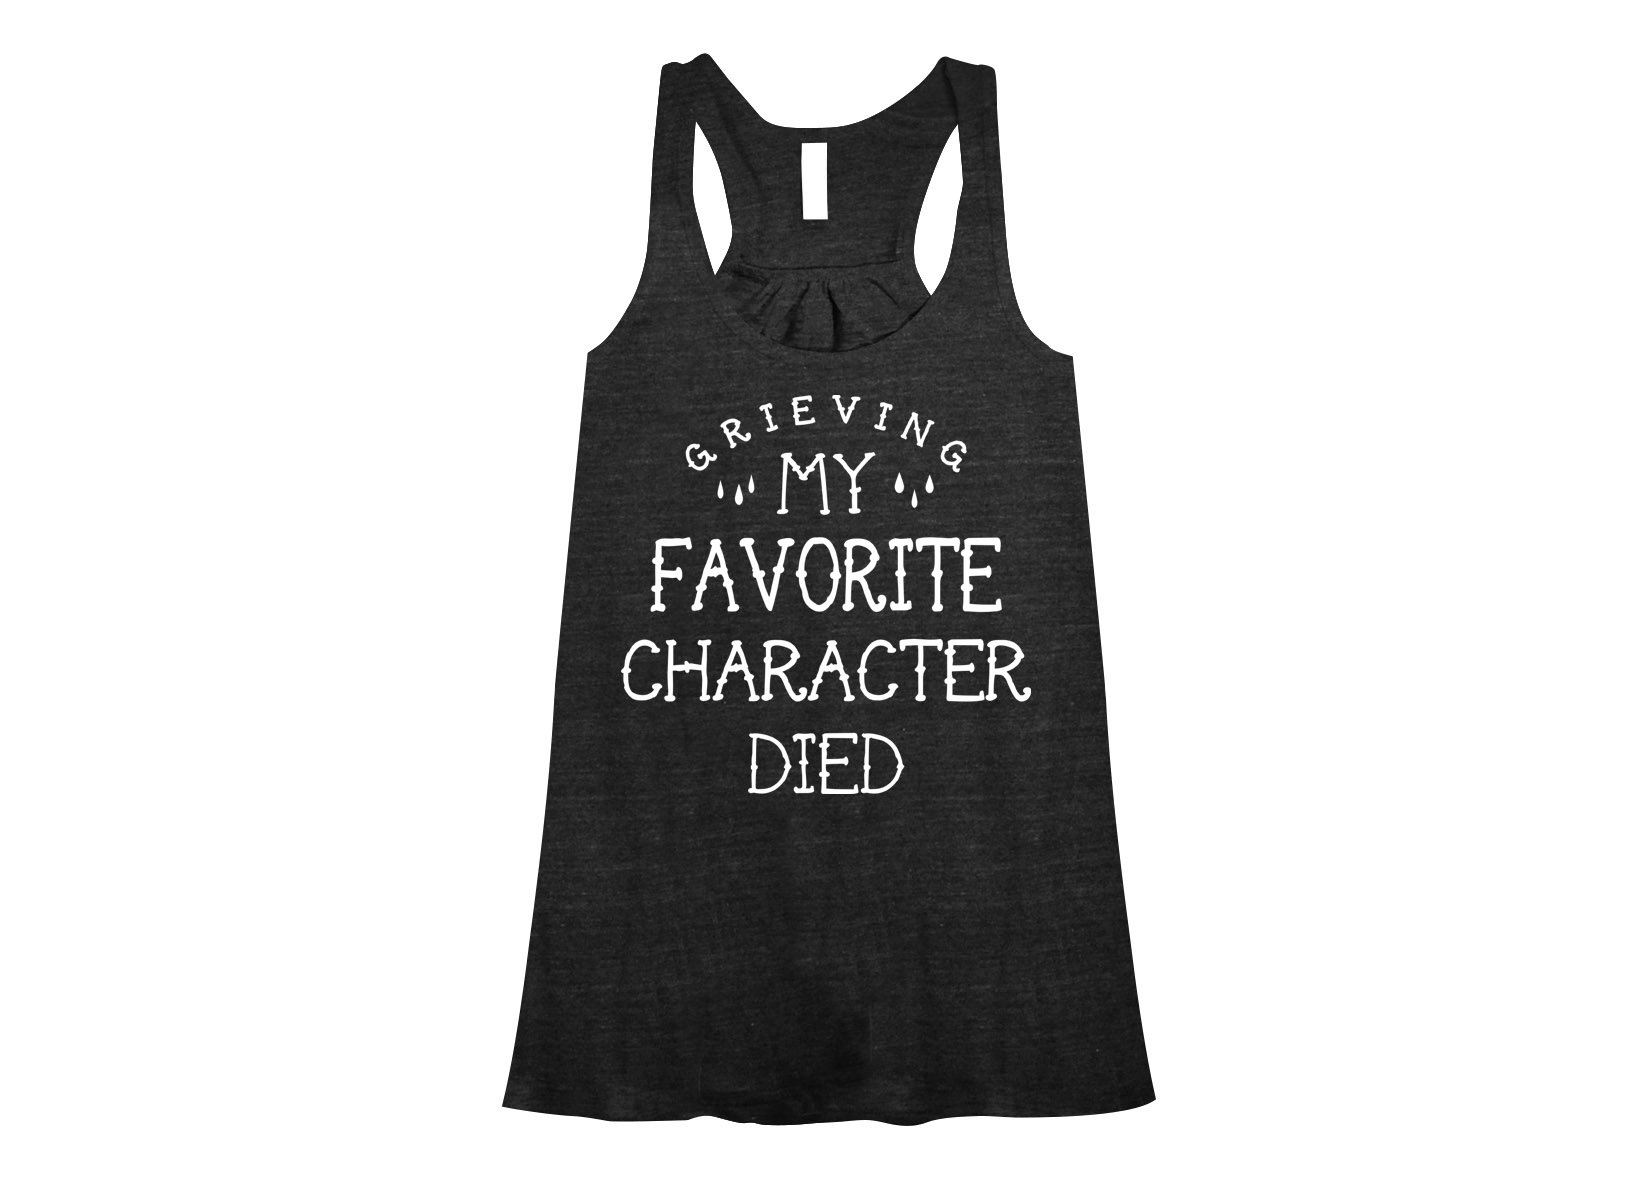 My Favorite Character Died on Womens Tanks T-Shirt